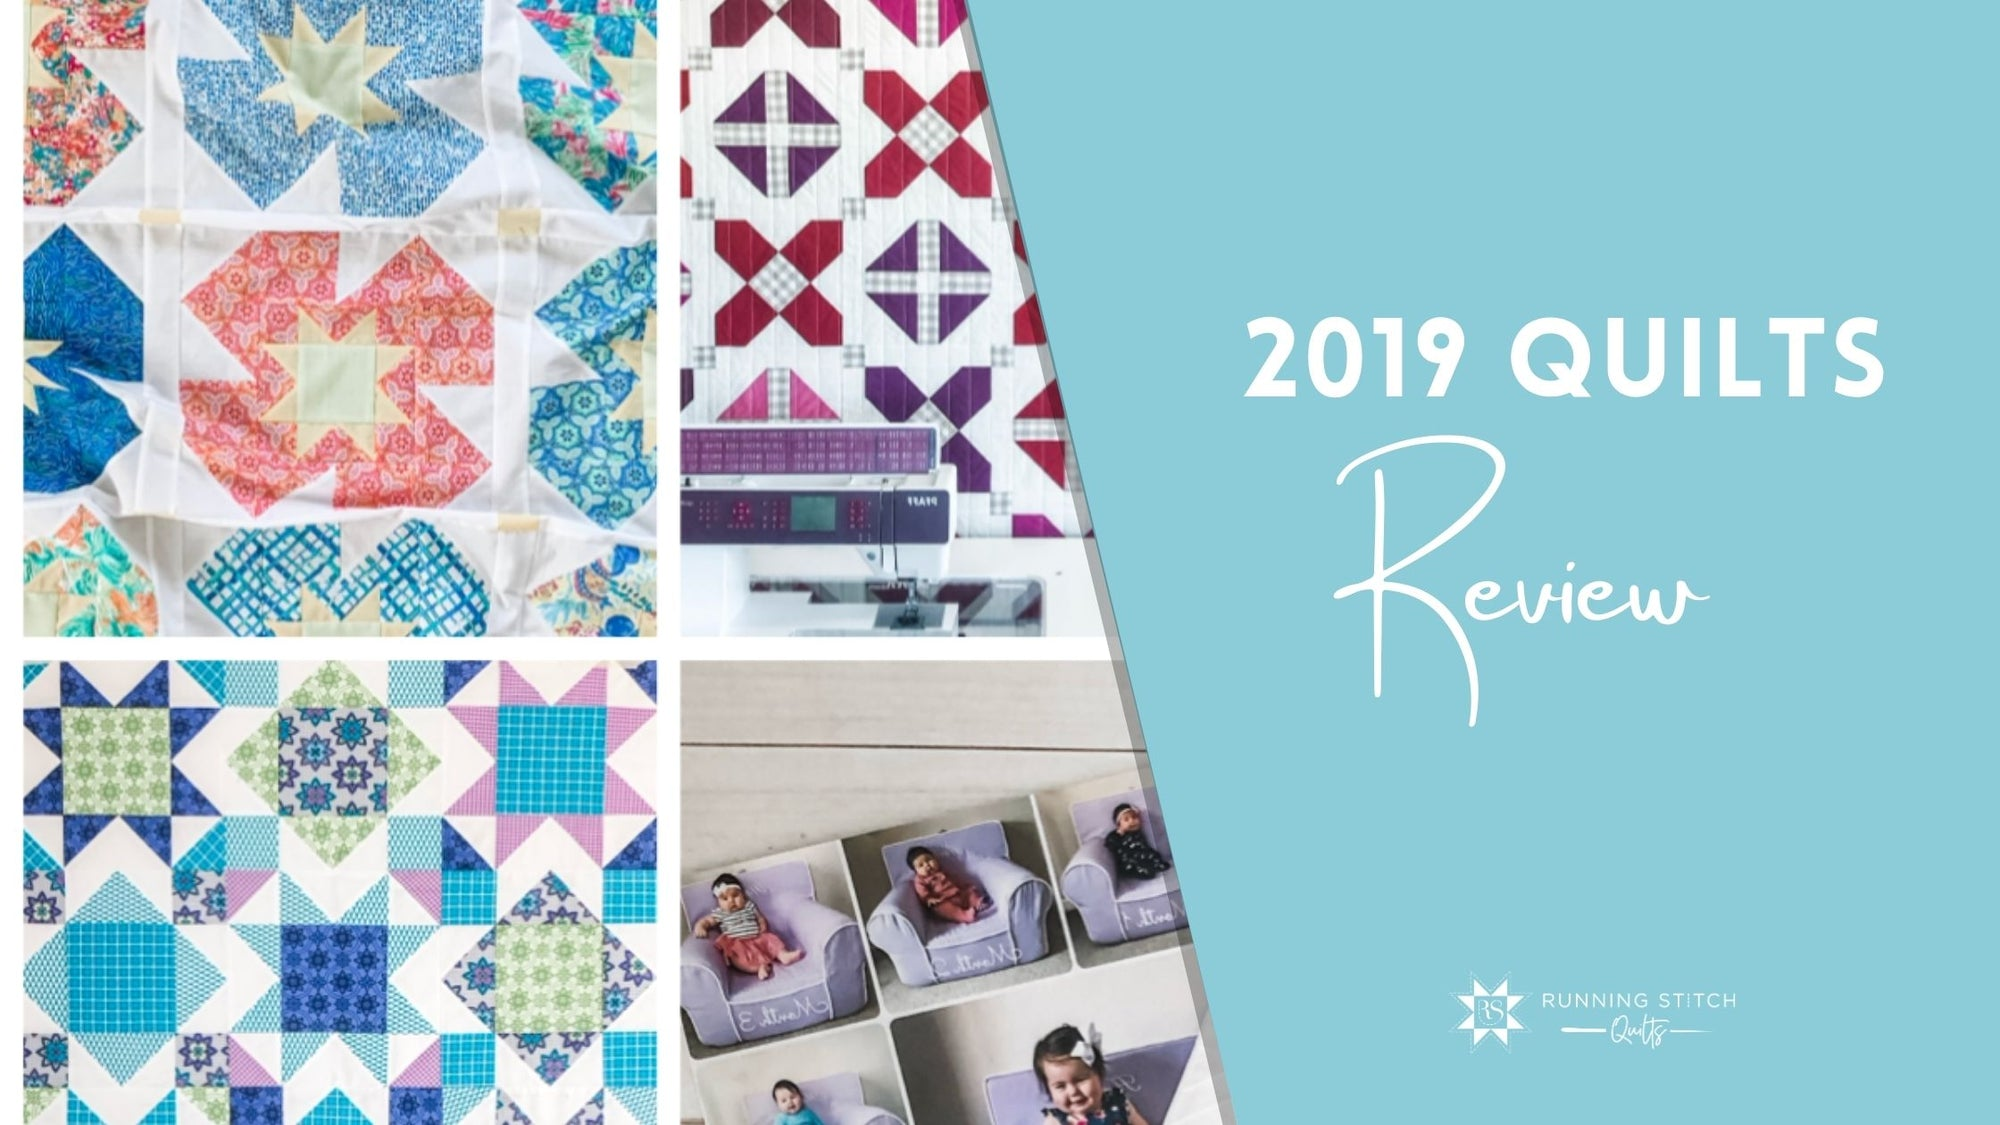 2019 Quilts in Review